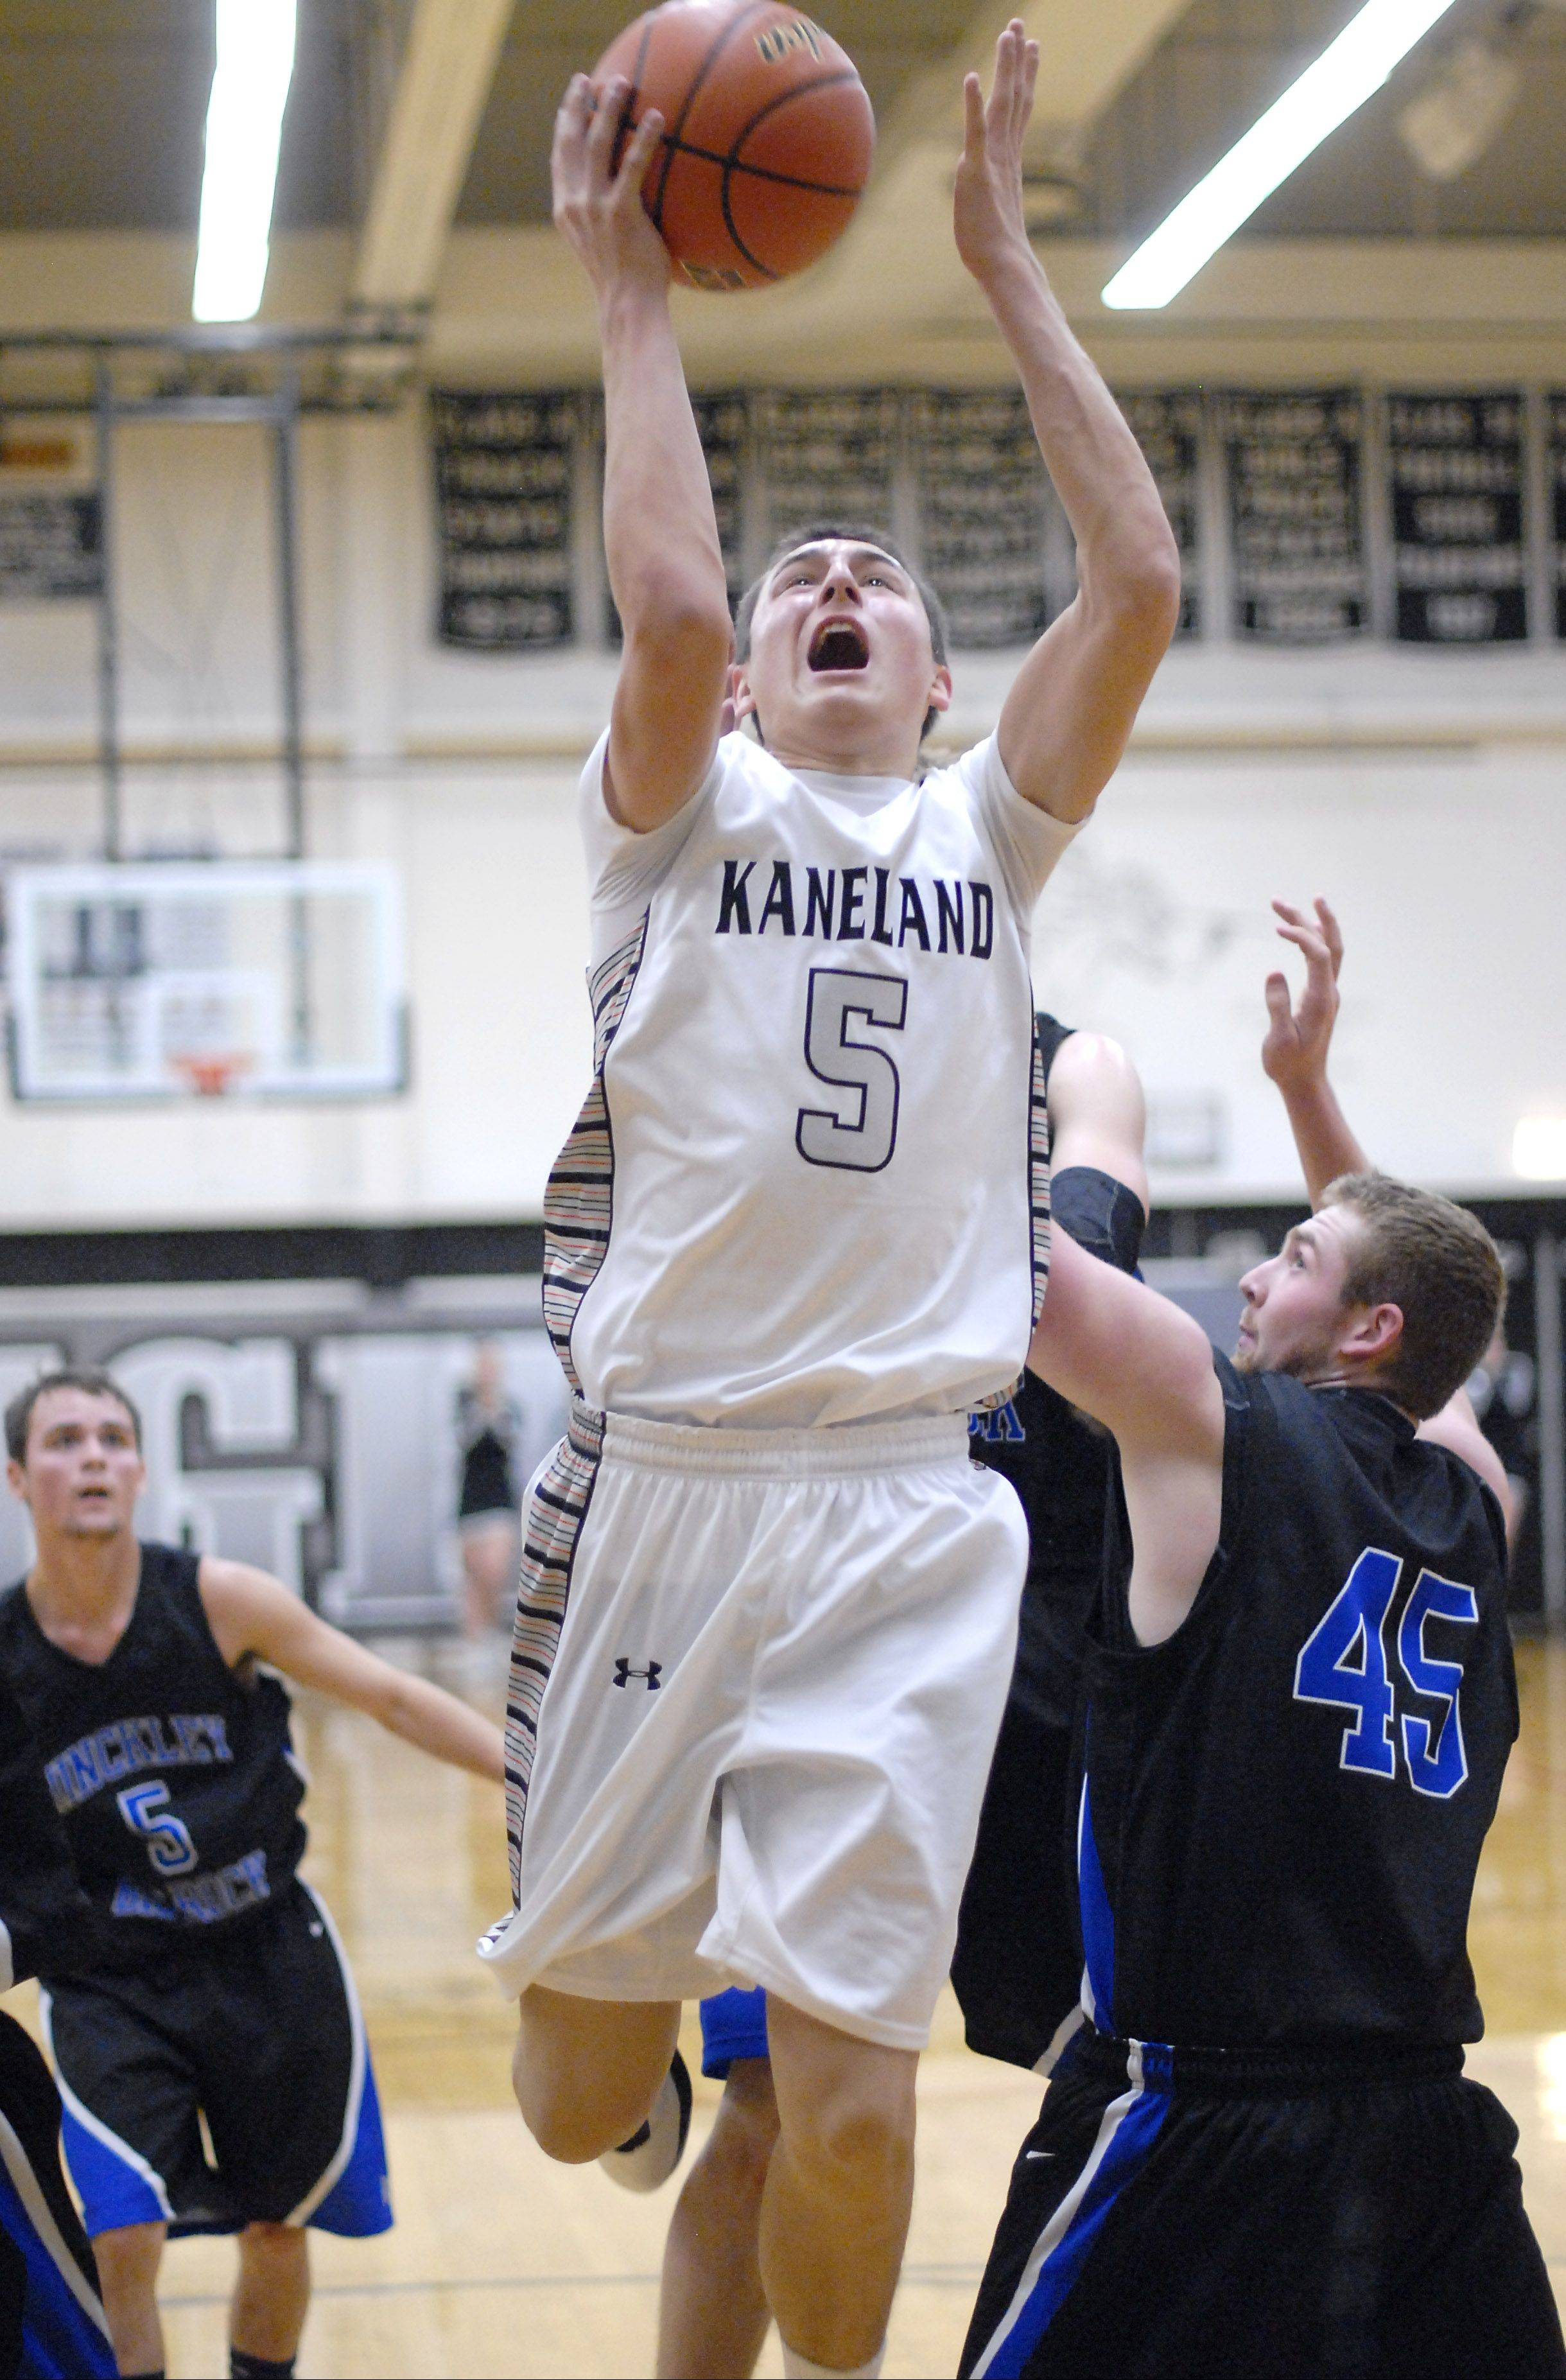 John Pruett is expected to be a key part of the Kaneland offense.